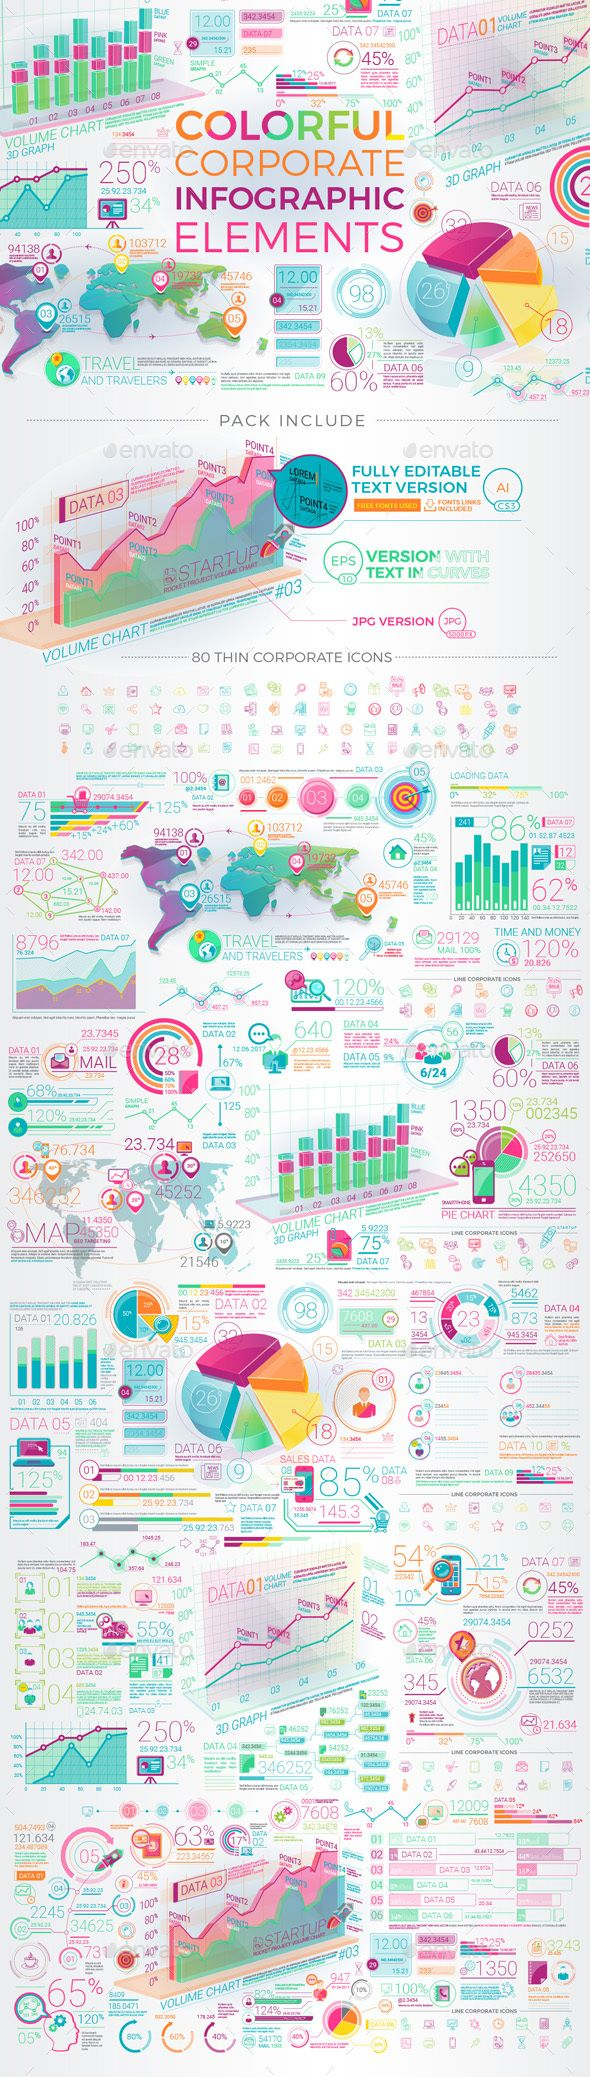 Colorful Corporate Infographic Elements - Template Vector EPS, AI Illustrator